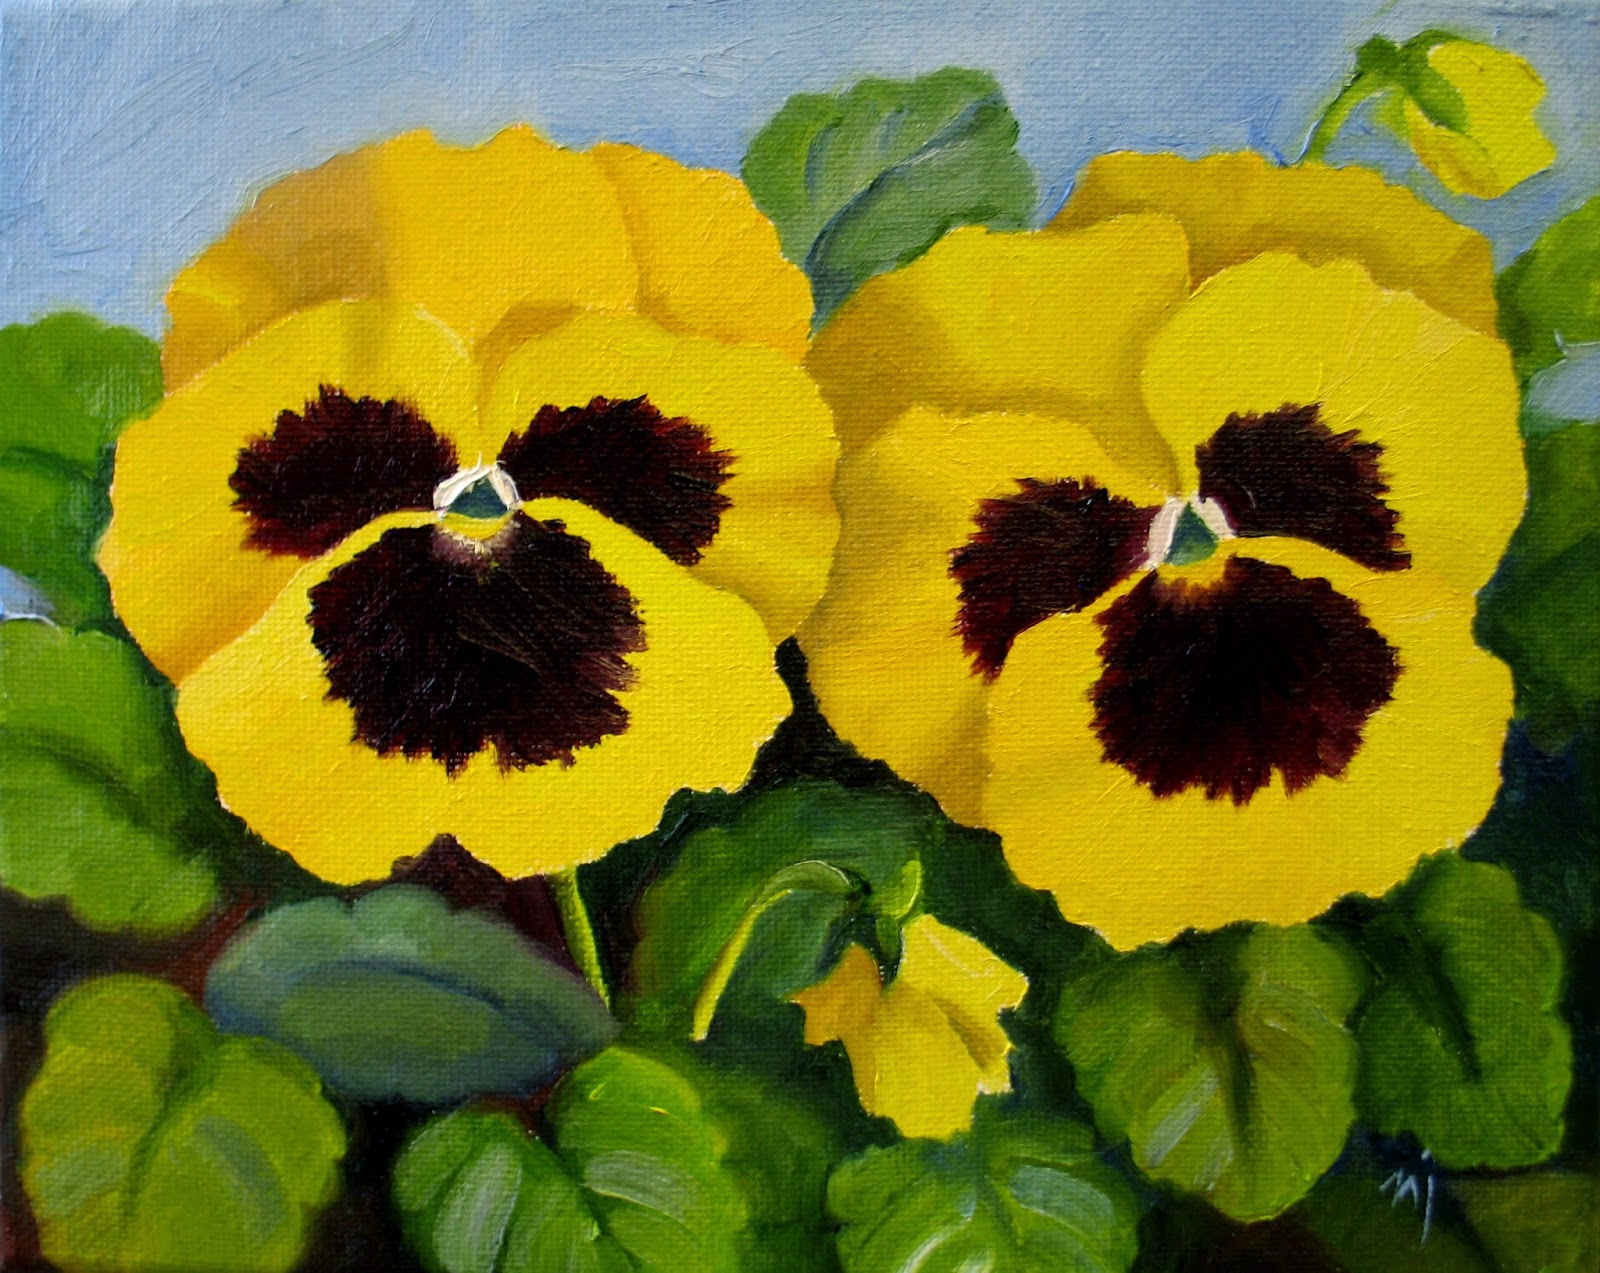 Nels Everyday Painting Yellow Pansies